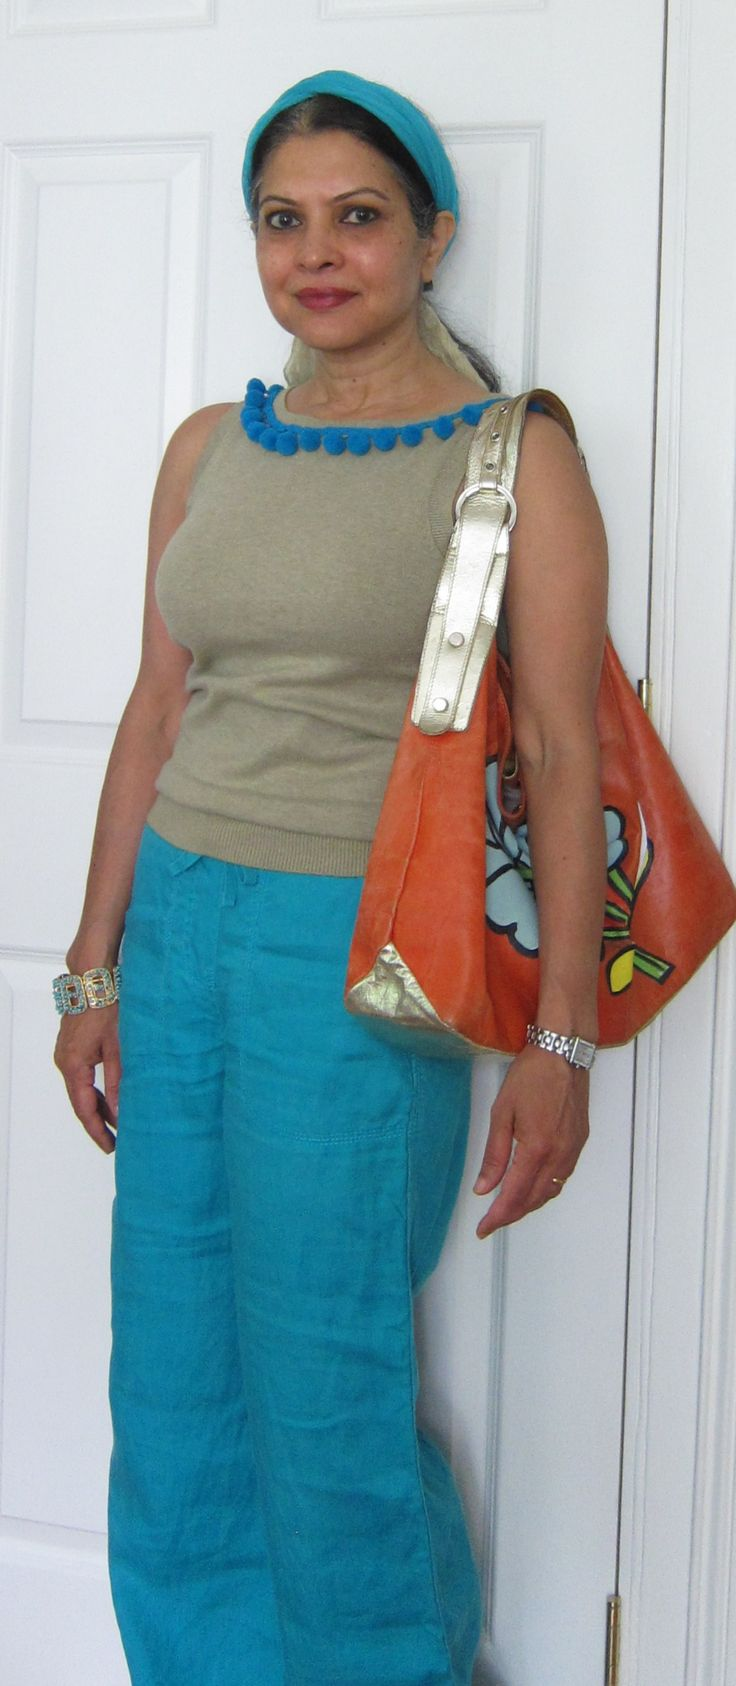 Zara top with pompoms added by me, Marks and Spencers wide leg linen pants, chiffon scarf, turquoise bracelet and Basta bag with painted flower by me - 2017